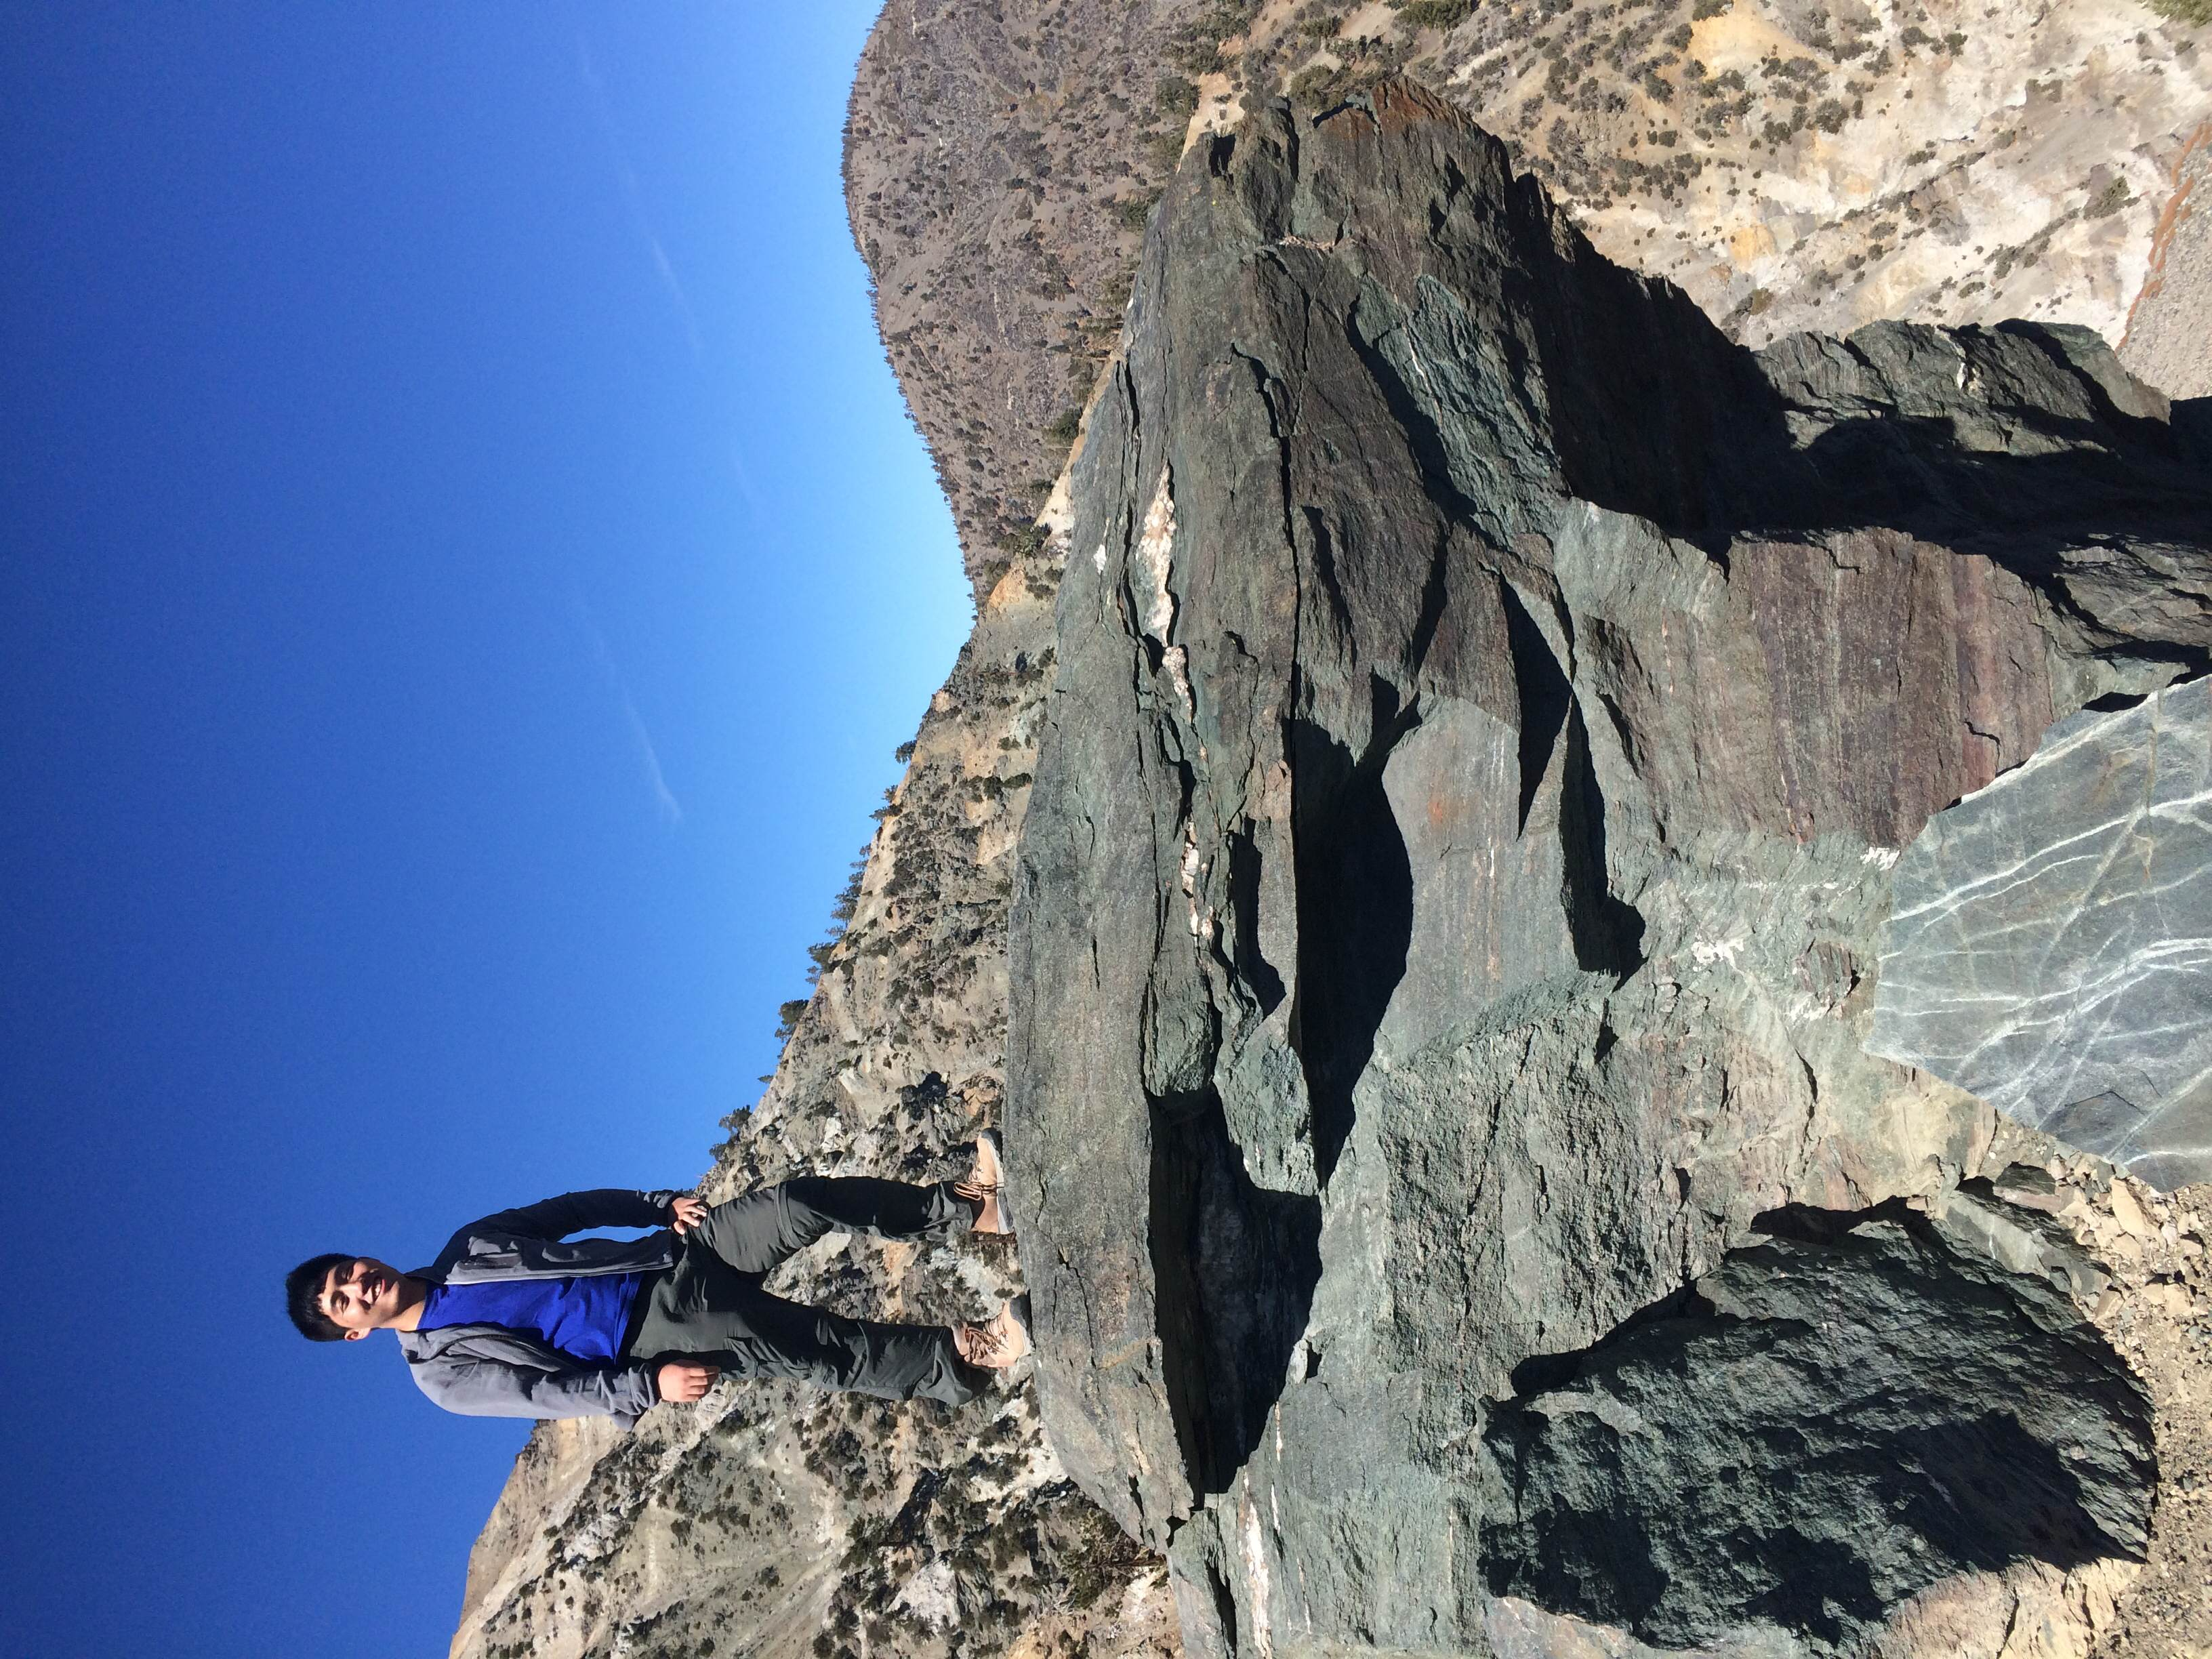 Axel Wong - Fieldtrip Coordinator   2nd Year Applied Geophysics B.S. student   Axel  is an enthusiast for both geology and alpine climbing. The highest mountain  Axel  climbed is Yuzhu Peak (6178 M) located in Qinghai Province, China.